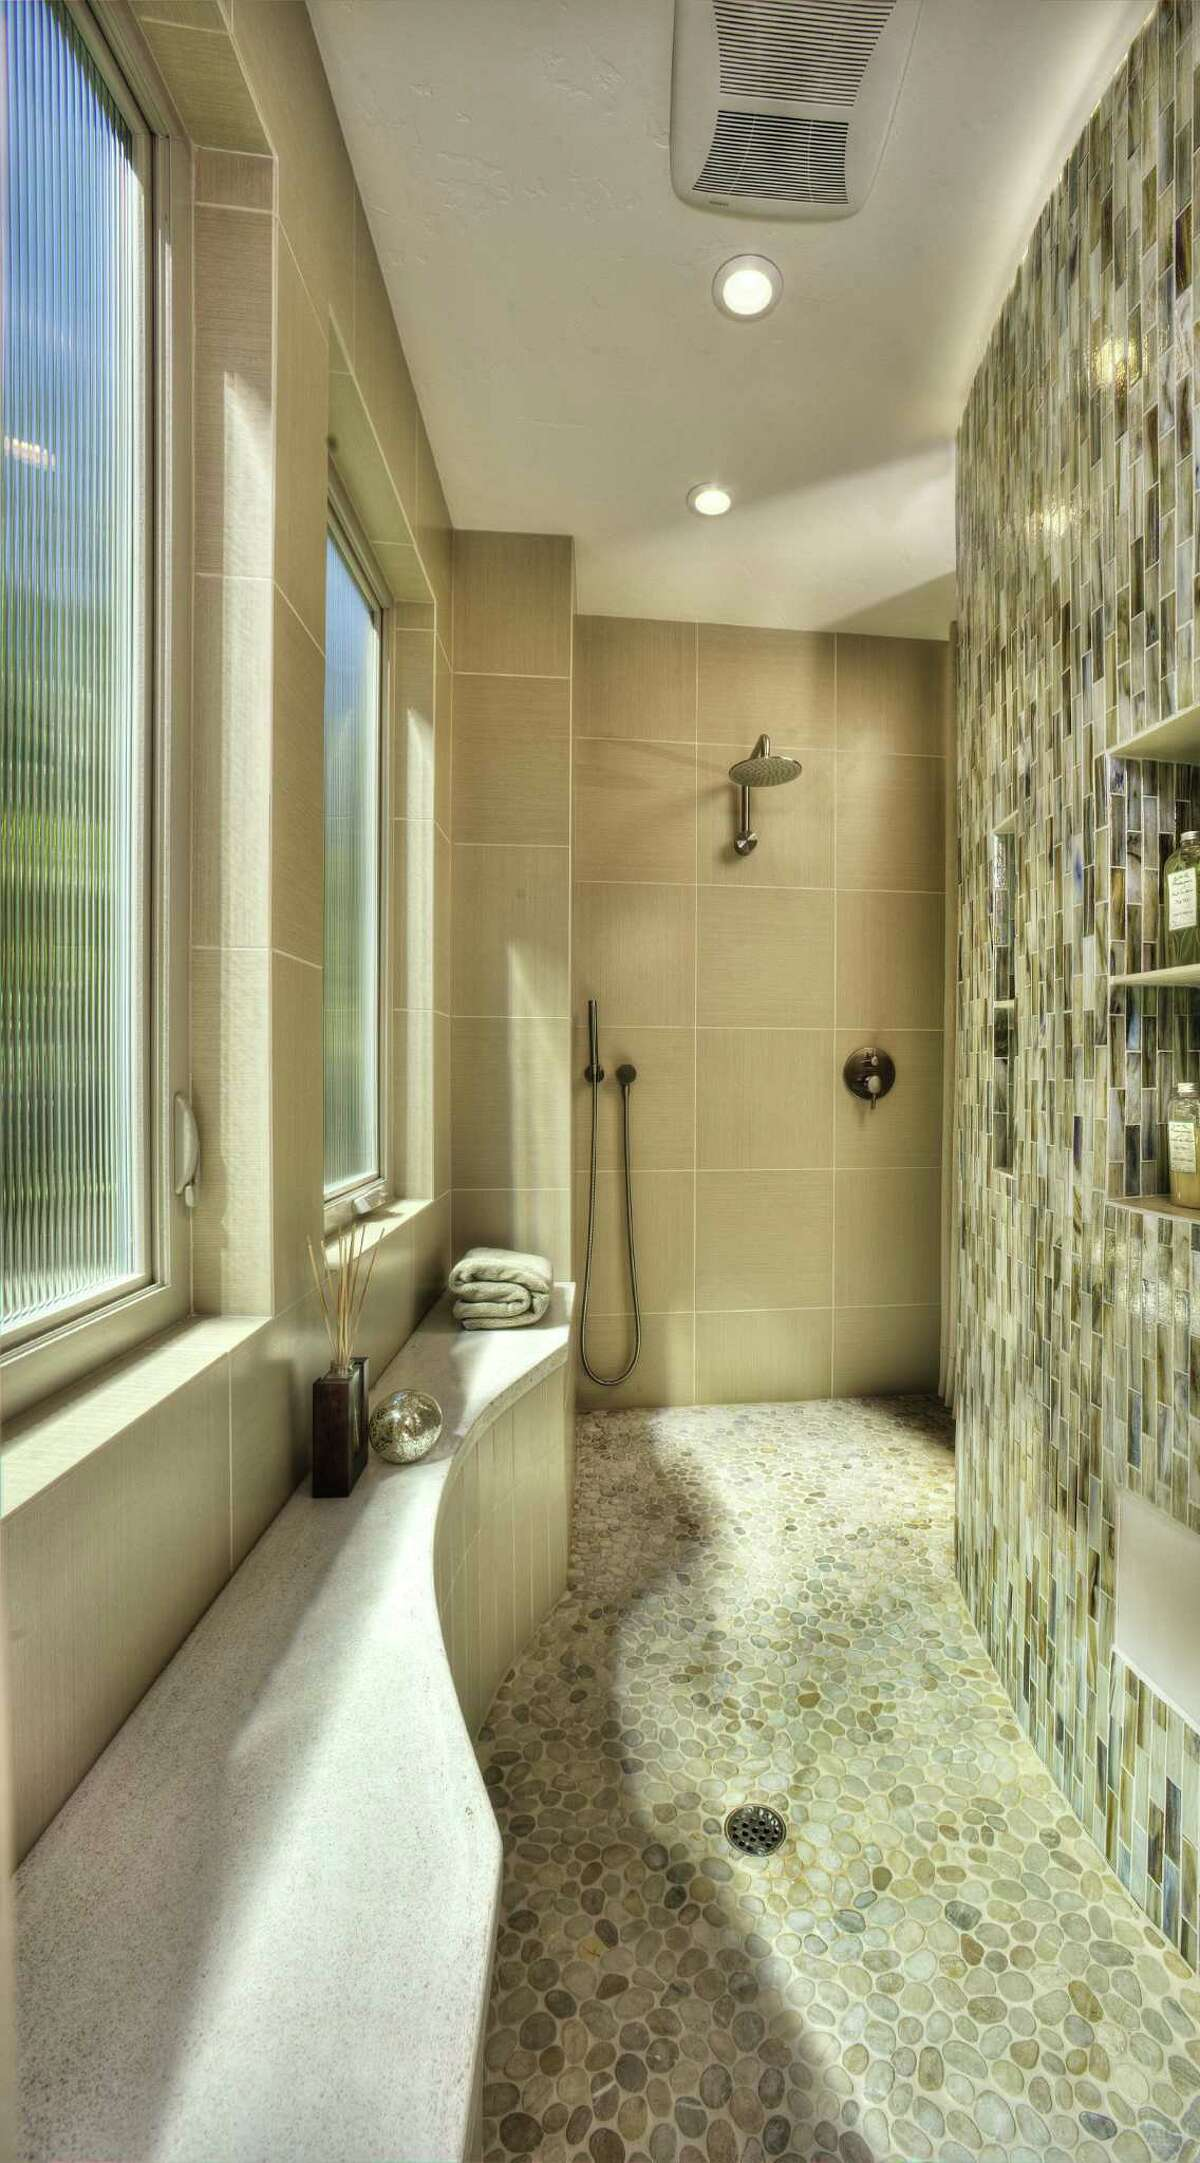 Homeowners want accessible showers that offer a spa feel and are easy to clean and maintain.